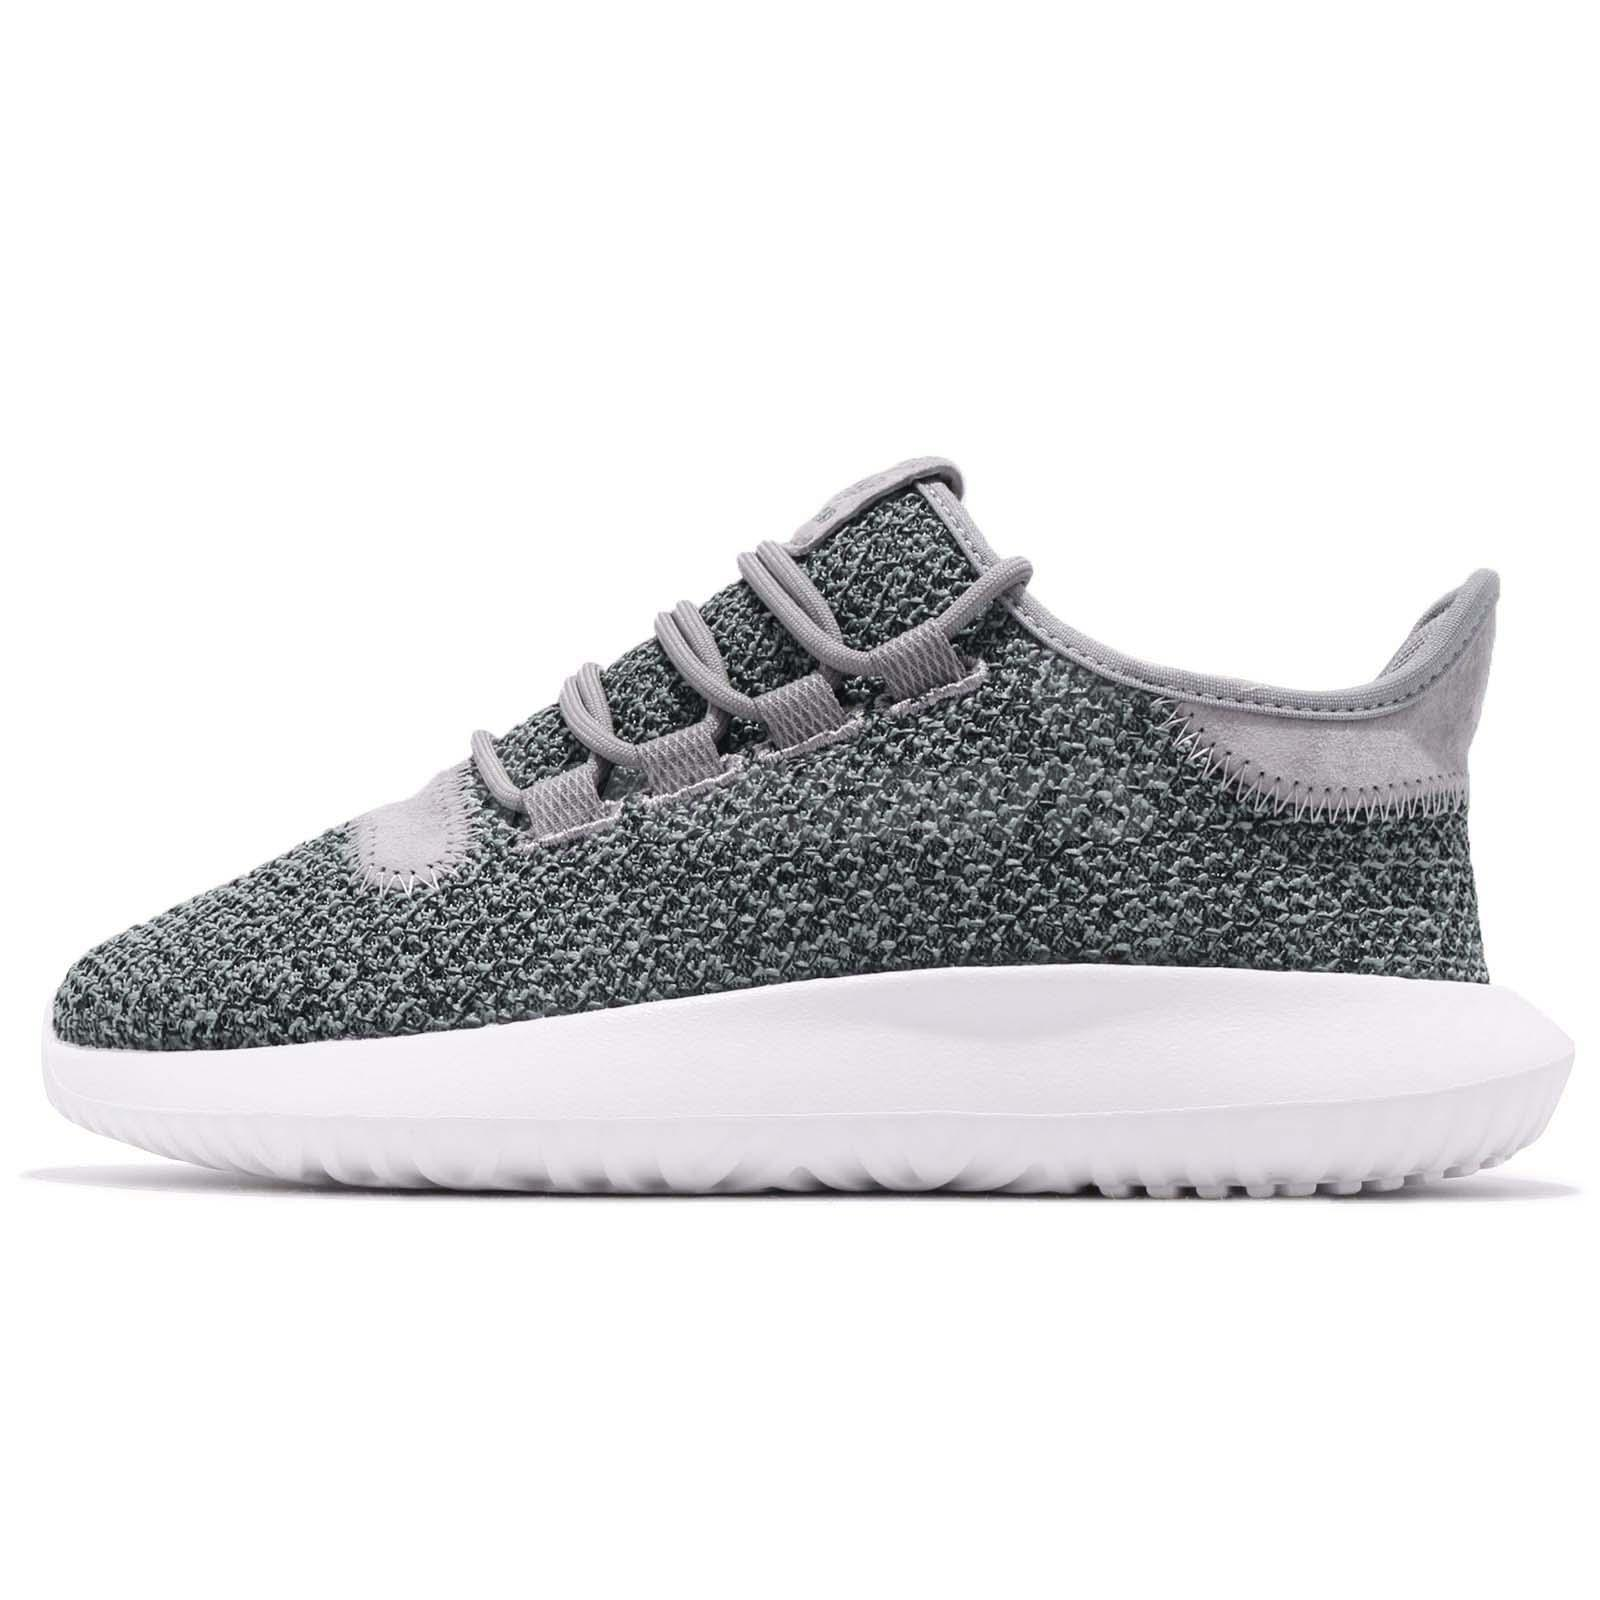 97bb98b7a3471 adidas Originals Tubular Shadow W Grey White Women Casual Shoes Sneakers  AC8331